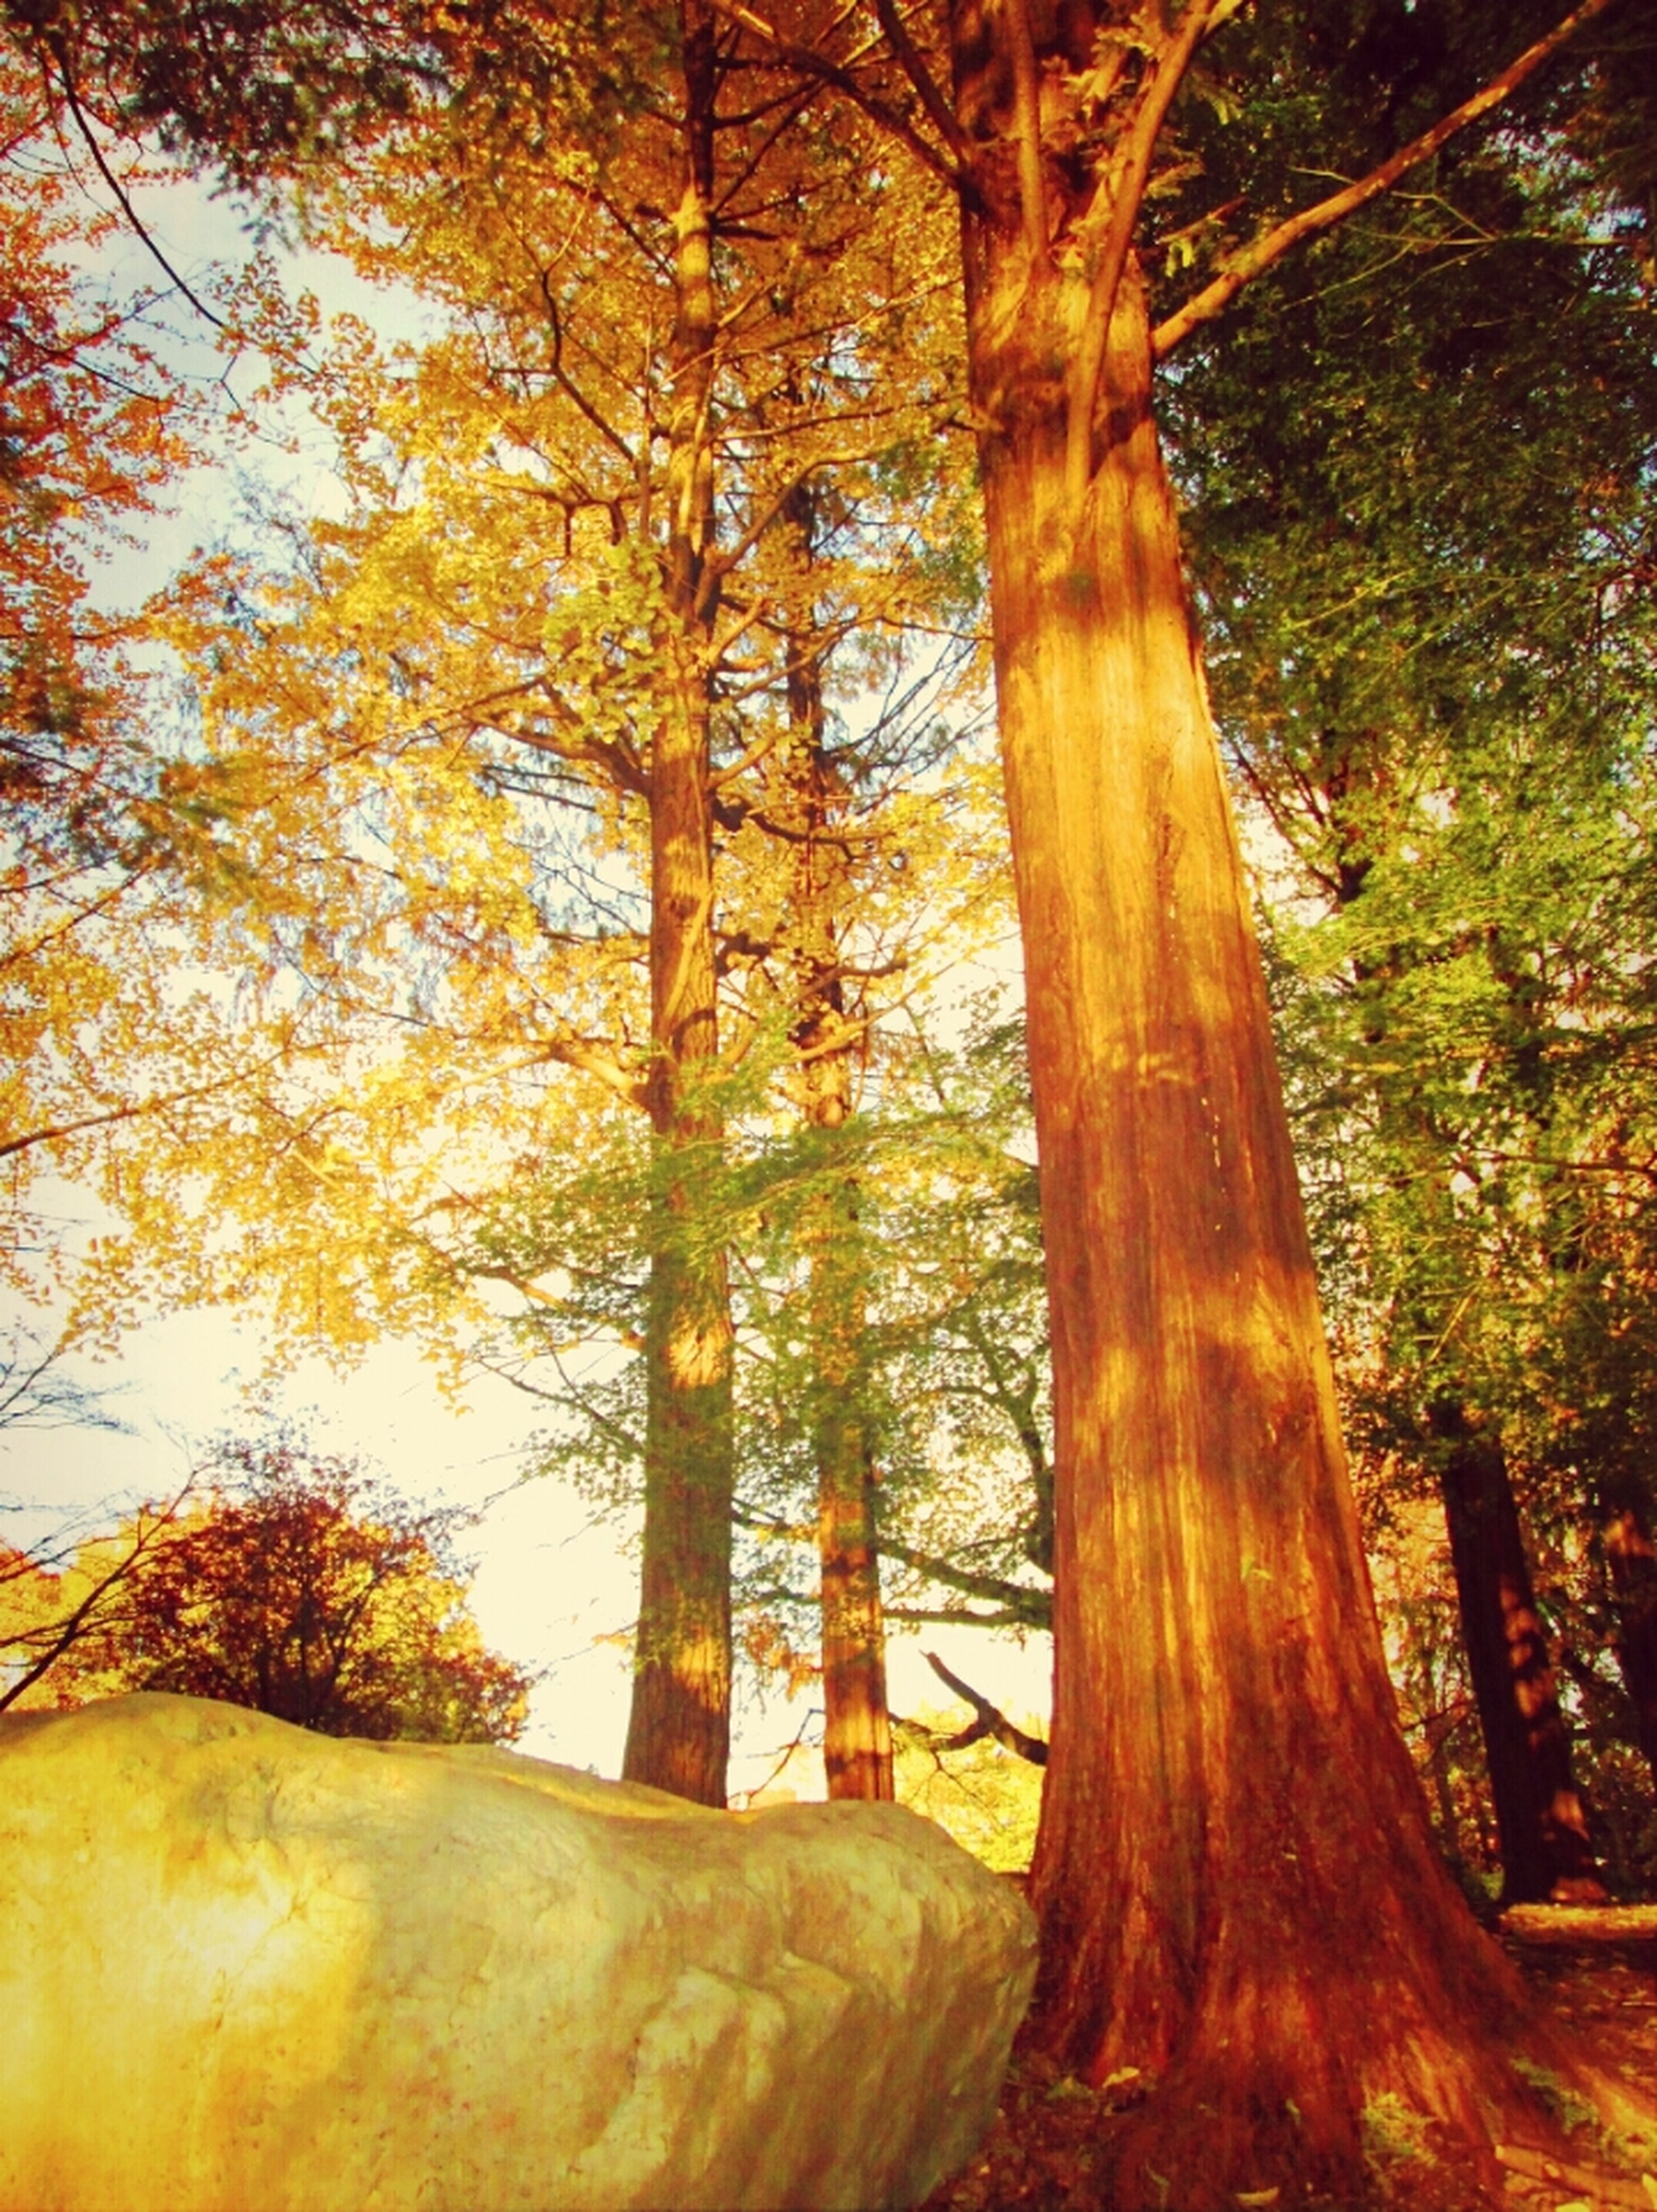 tree, tree trunk, forest, tranquility, growth, branch, woodland, nature, tranquil scene, beauty in nature, scenics, sunlight, non-urban scene, low angle view, outdoors, autumn, no people, day, idyllic, leaf